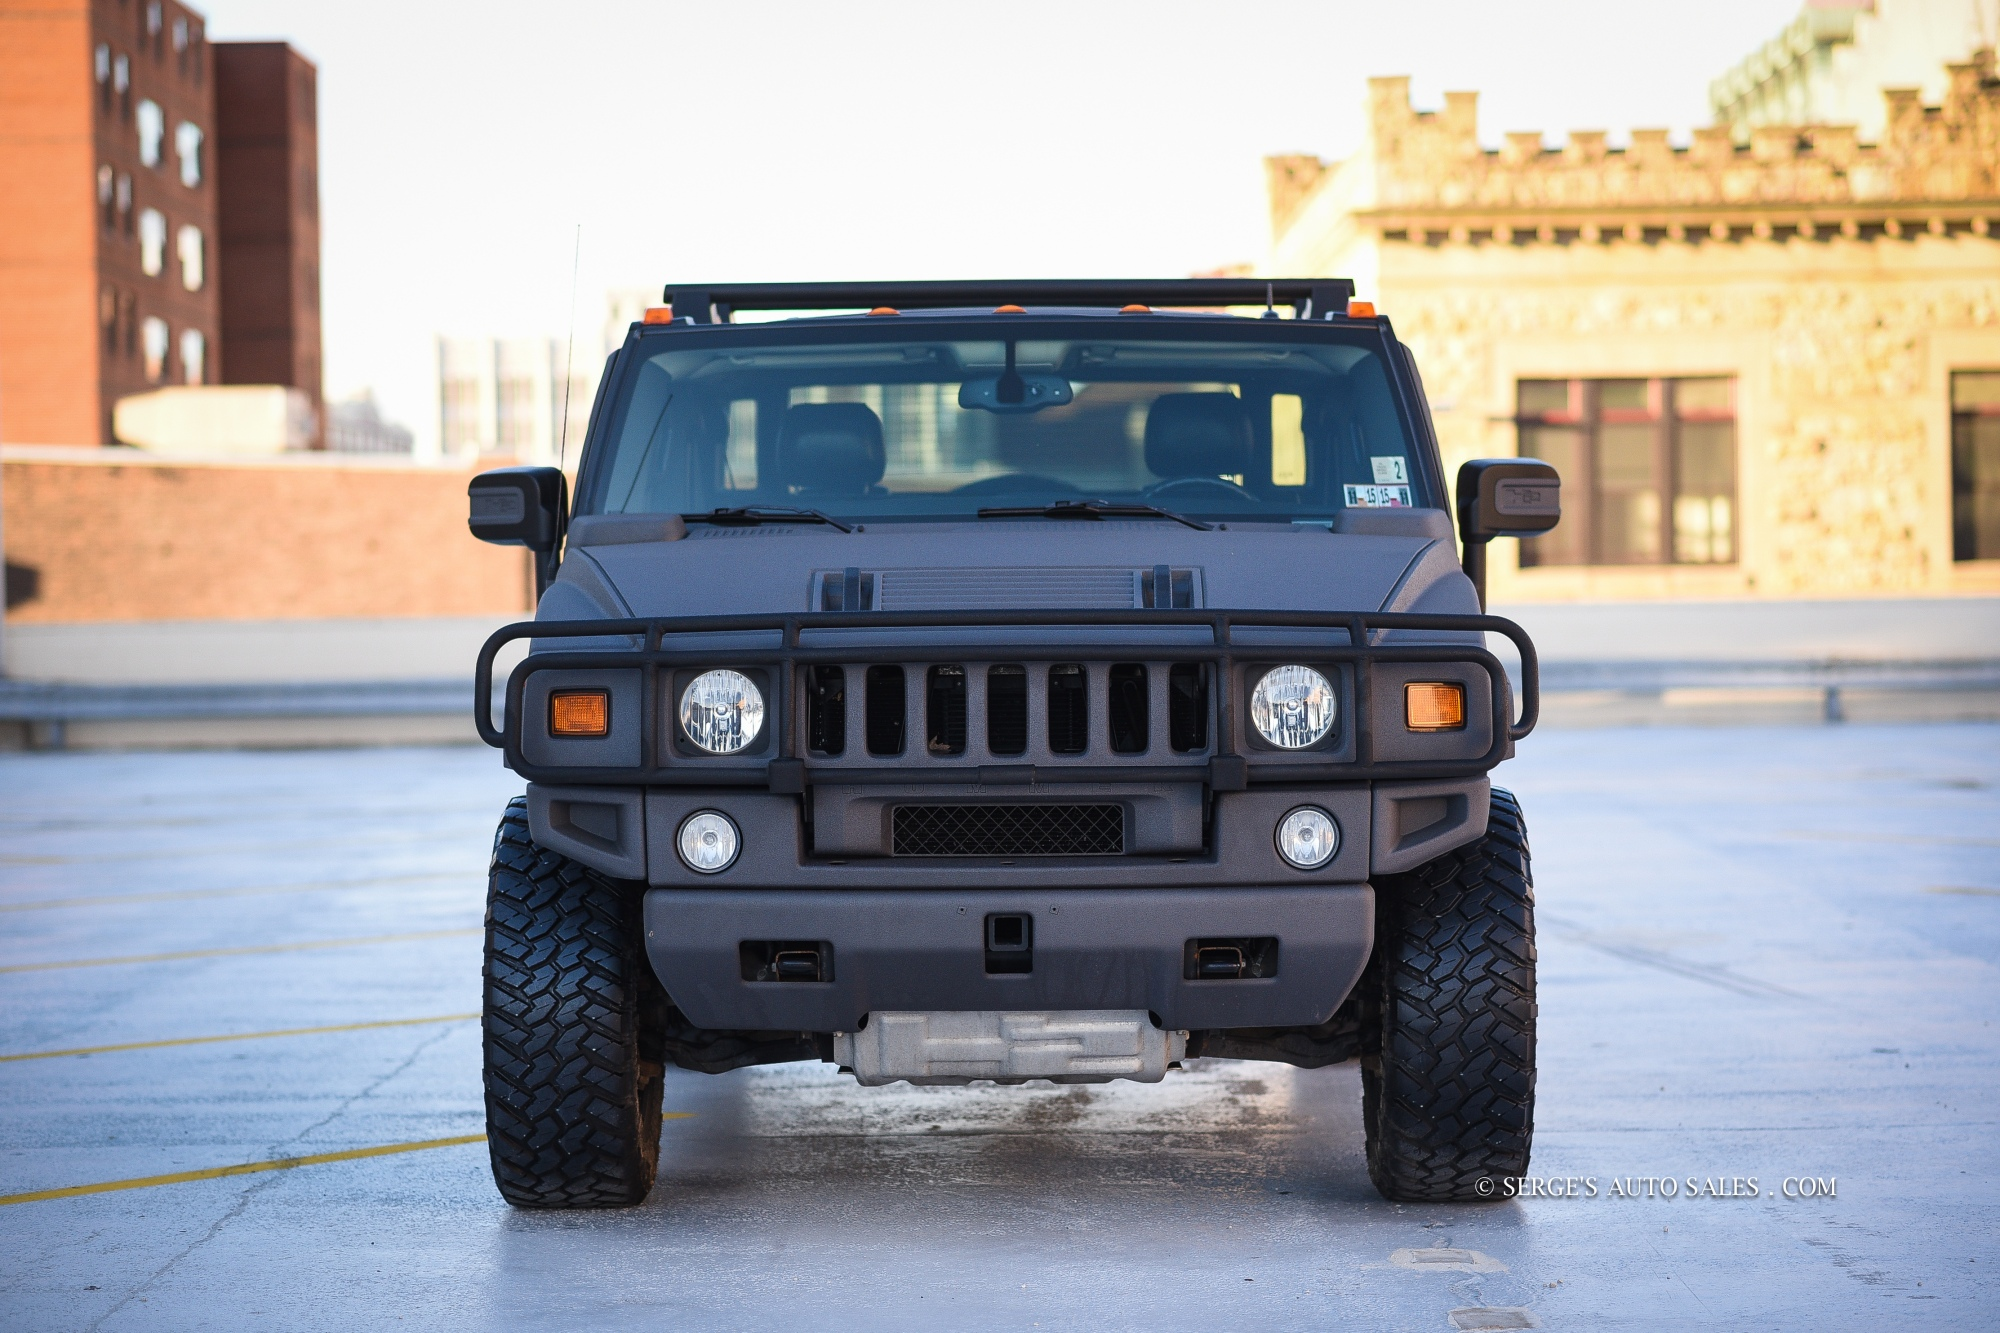 2009 Kevlar Hummer H2 SUT SOLD – Serges Auto Sales of northeast pa